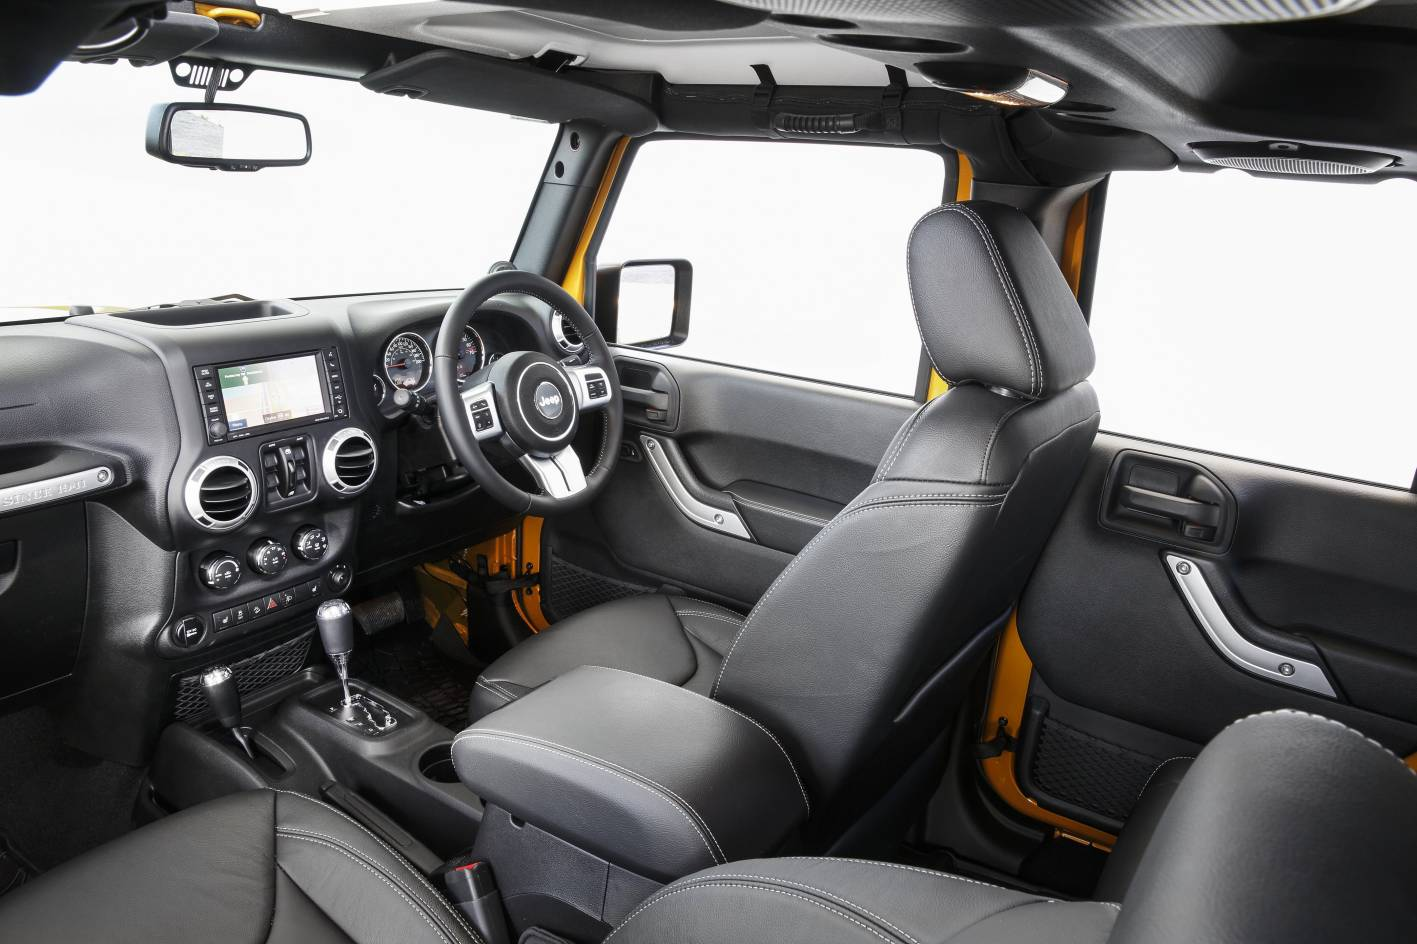 Merveilleux Awesome Jeep Wrangler Rubicon Xinterior With Jeep Wrangler Rubicon Interior